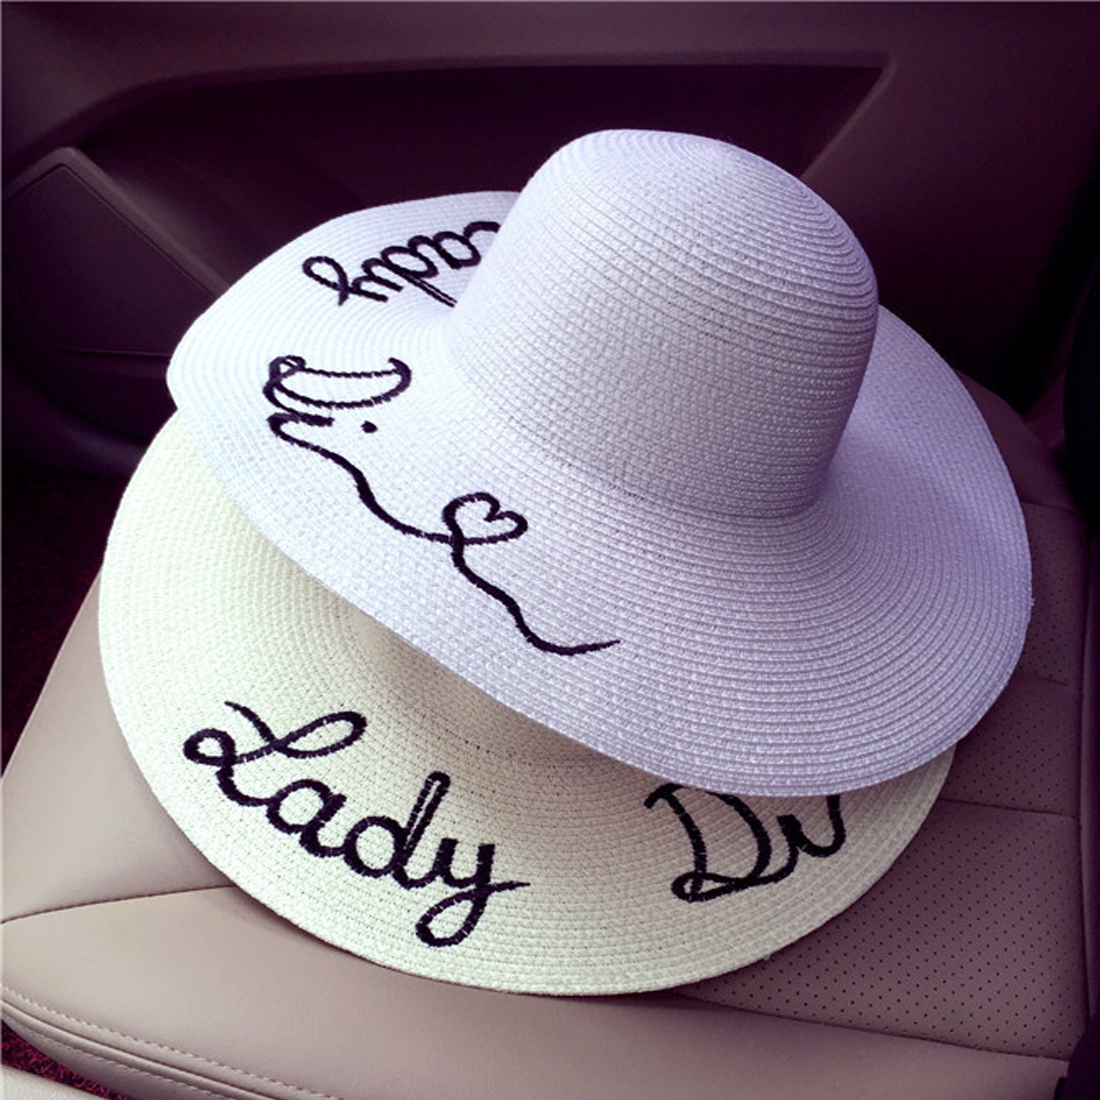 Hot Sell Adjustable Letter Embroidery Panama Hat Large Brim Sunbonnet Straw  Hat Women's Summer Sun Hat